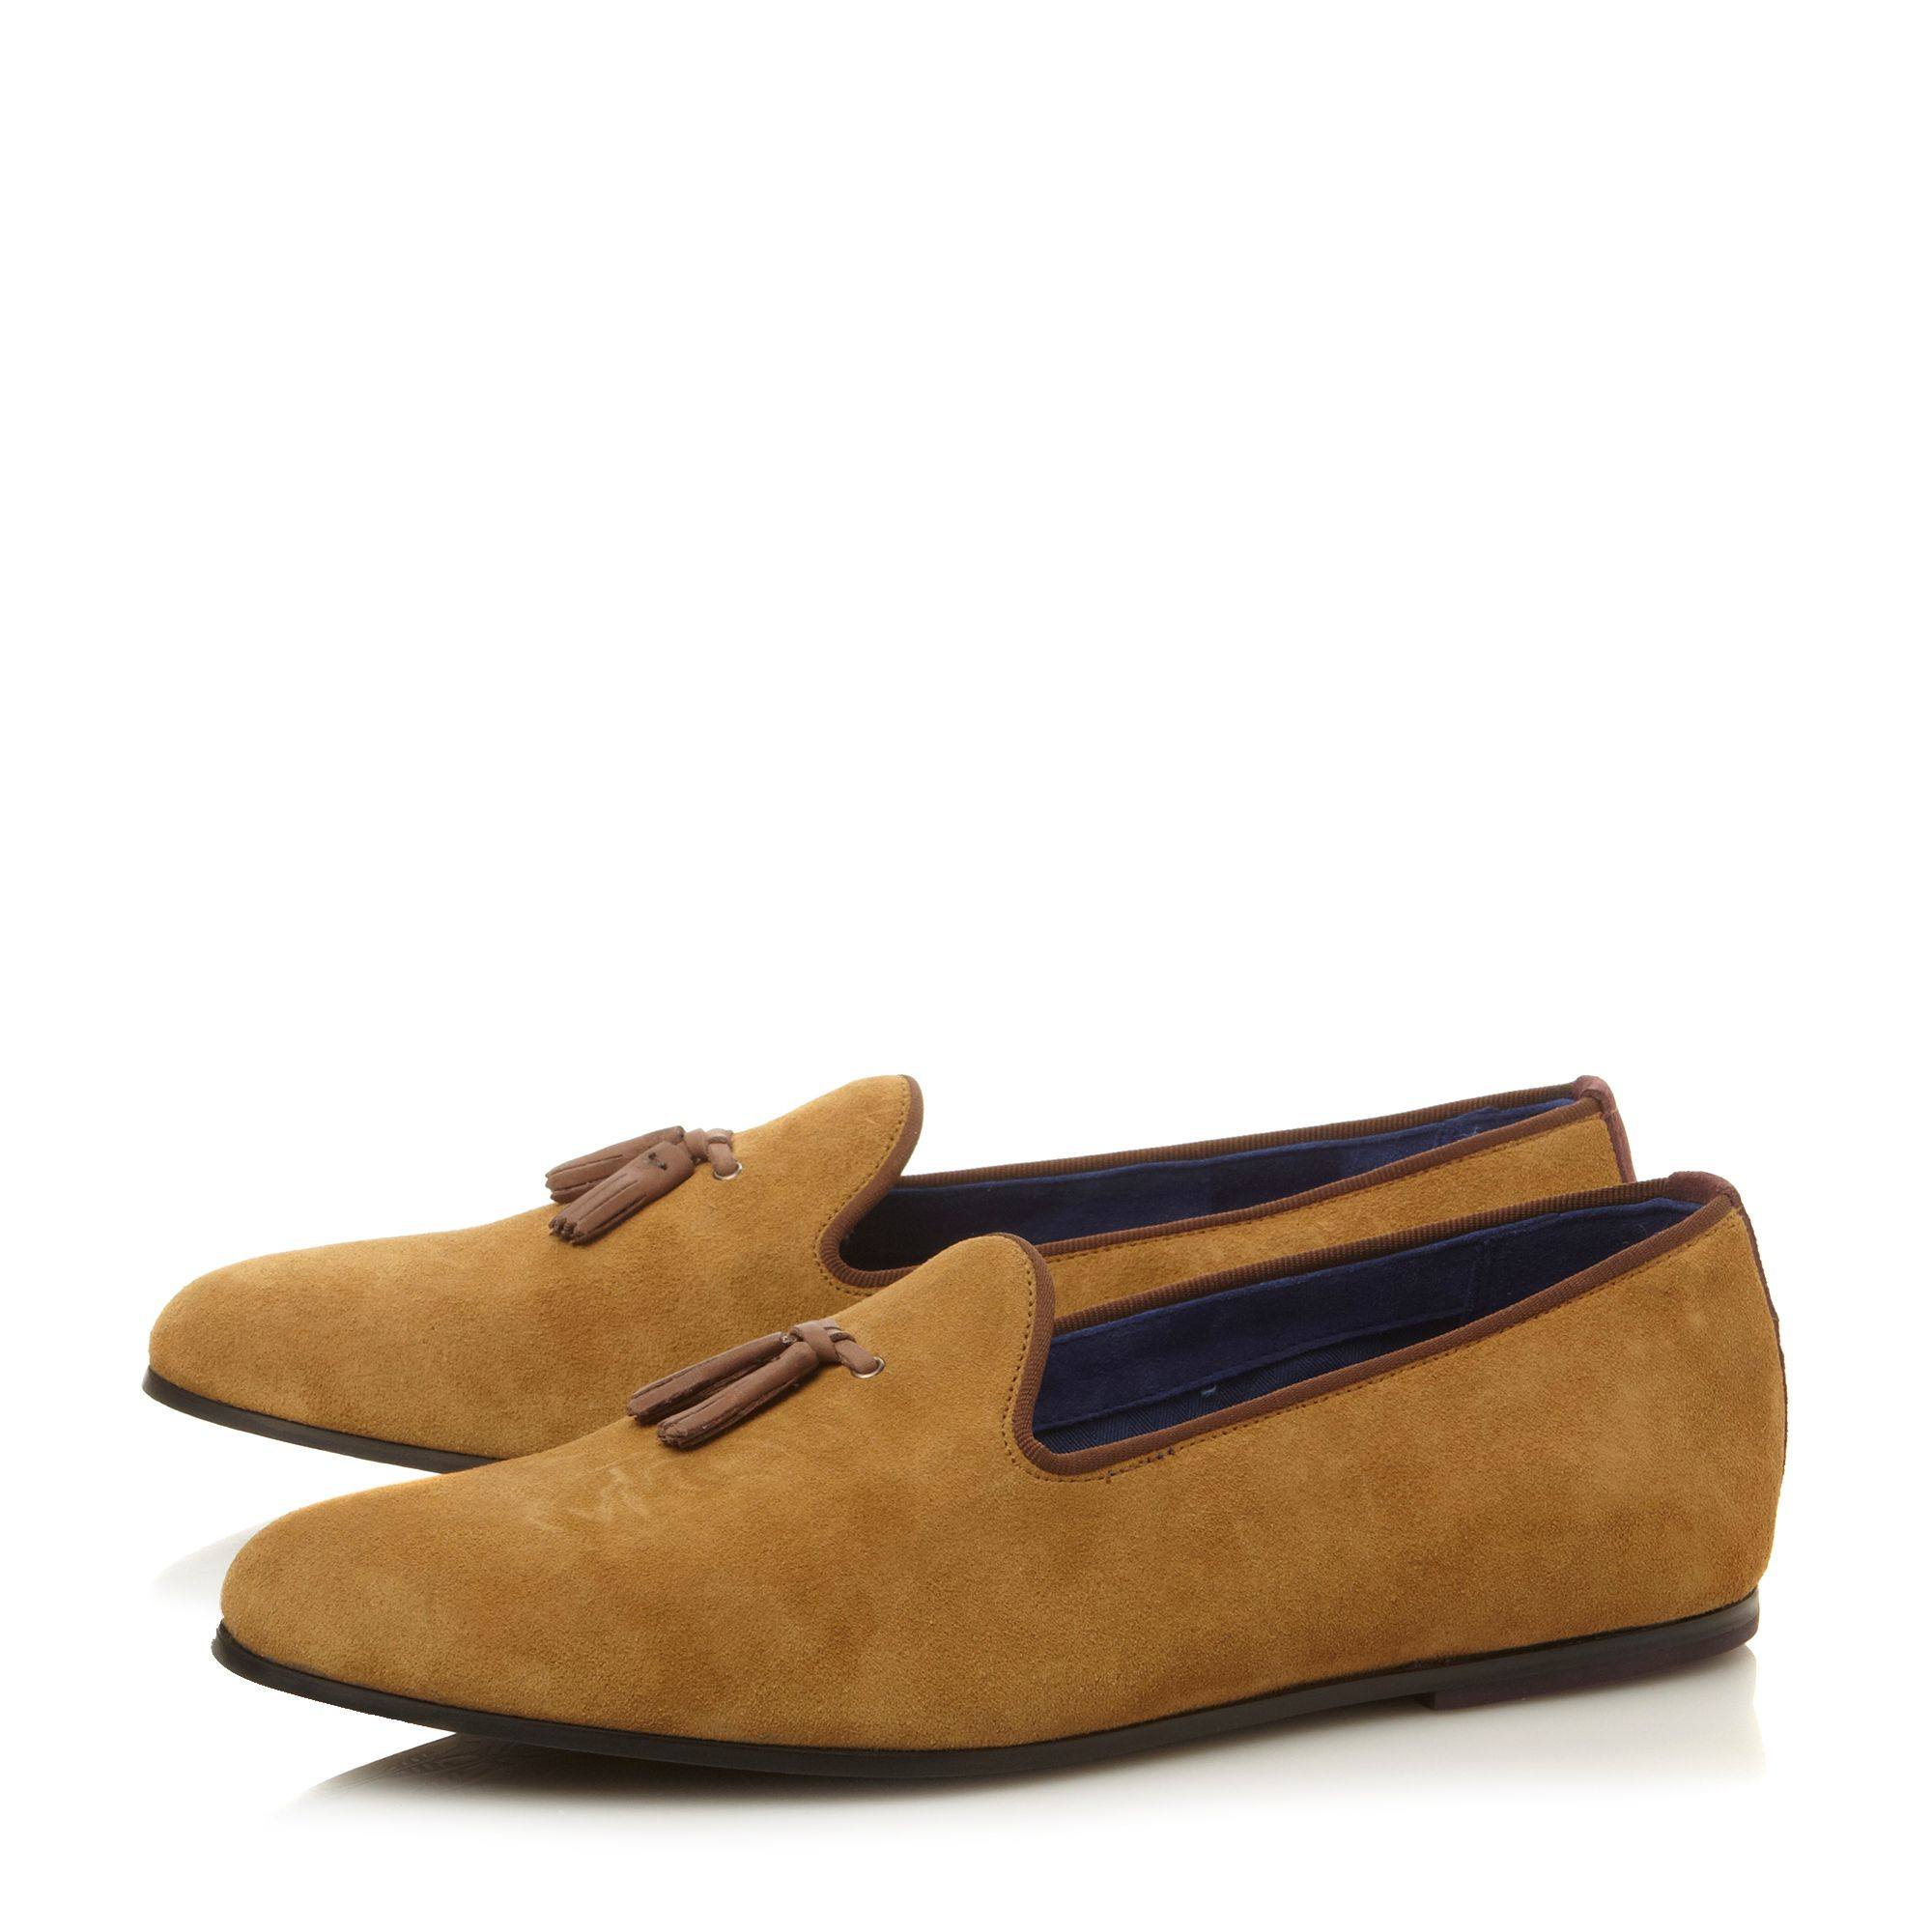 Treal tassle slippers